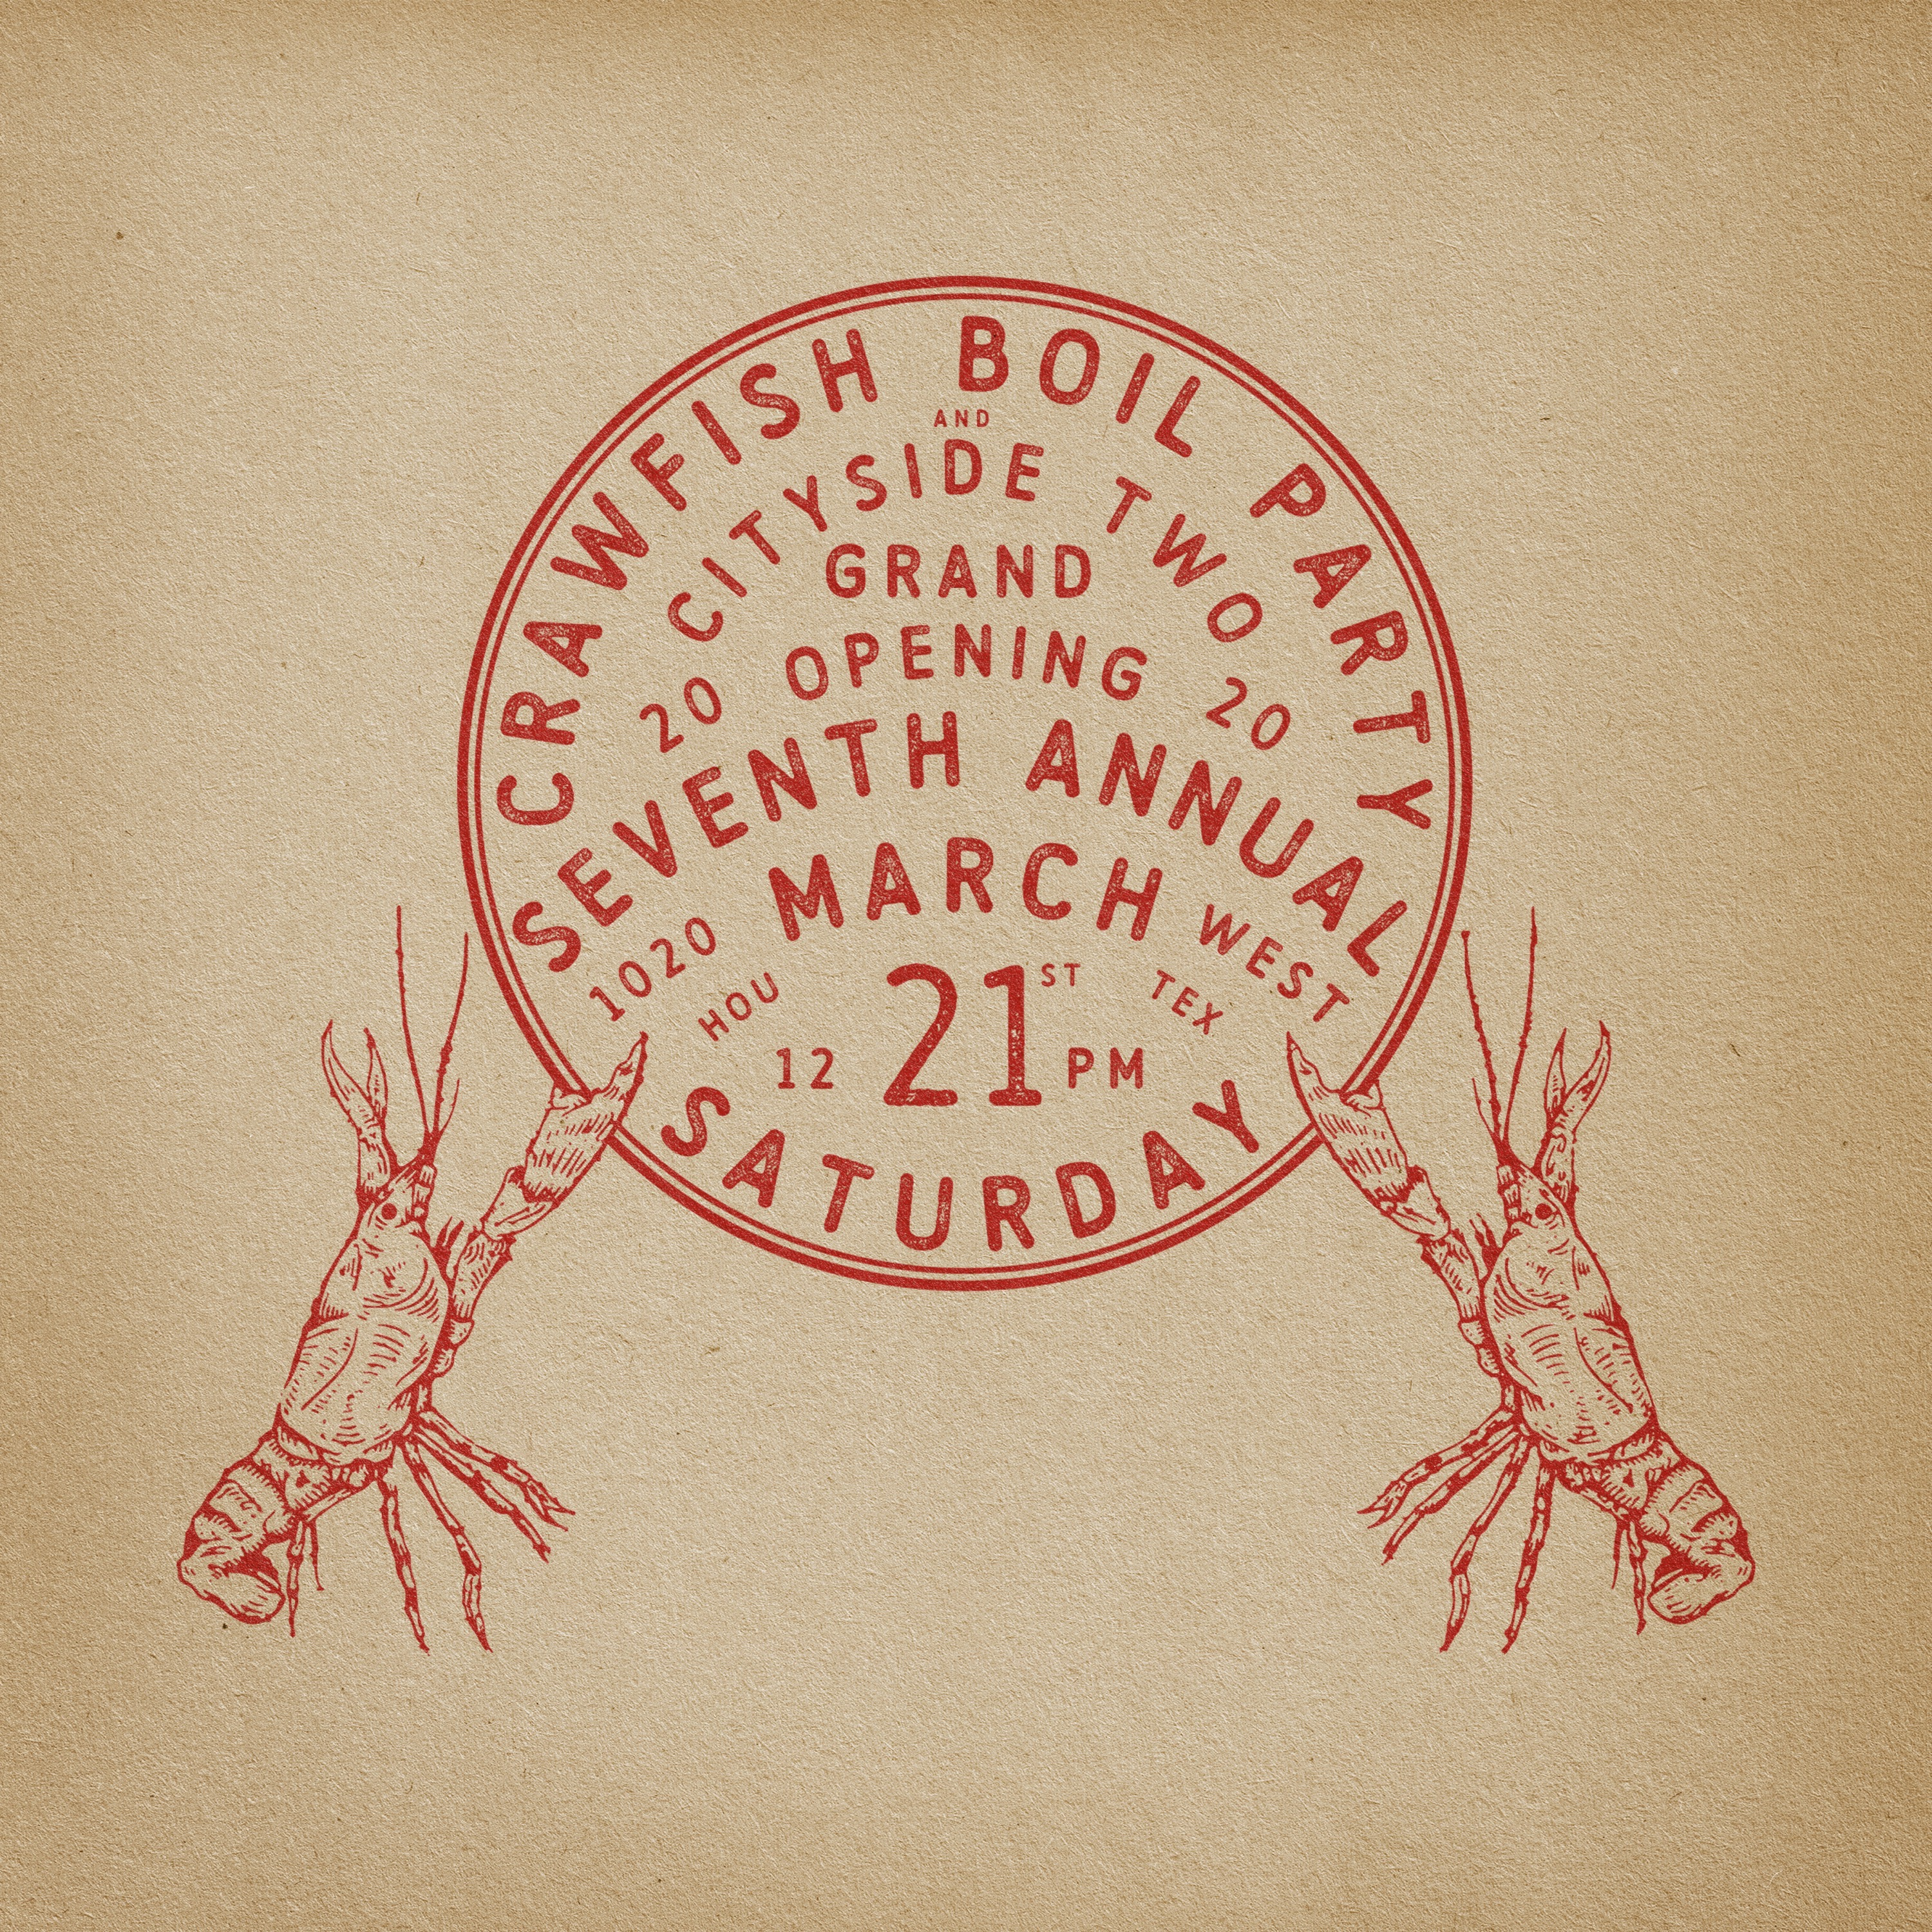 7th Annual Crawfish Boil + Grand Opening Party